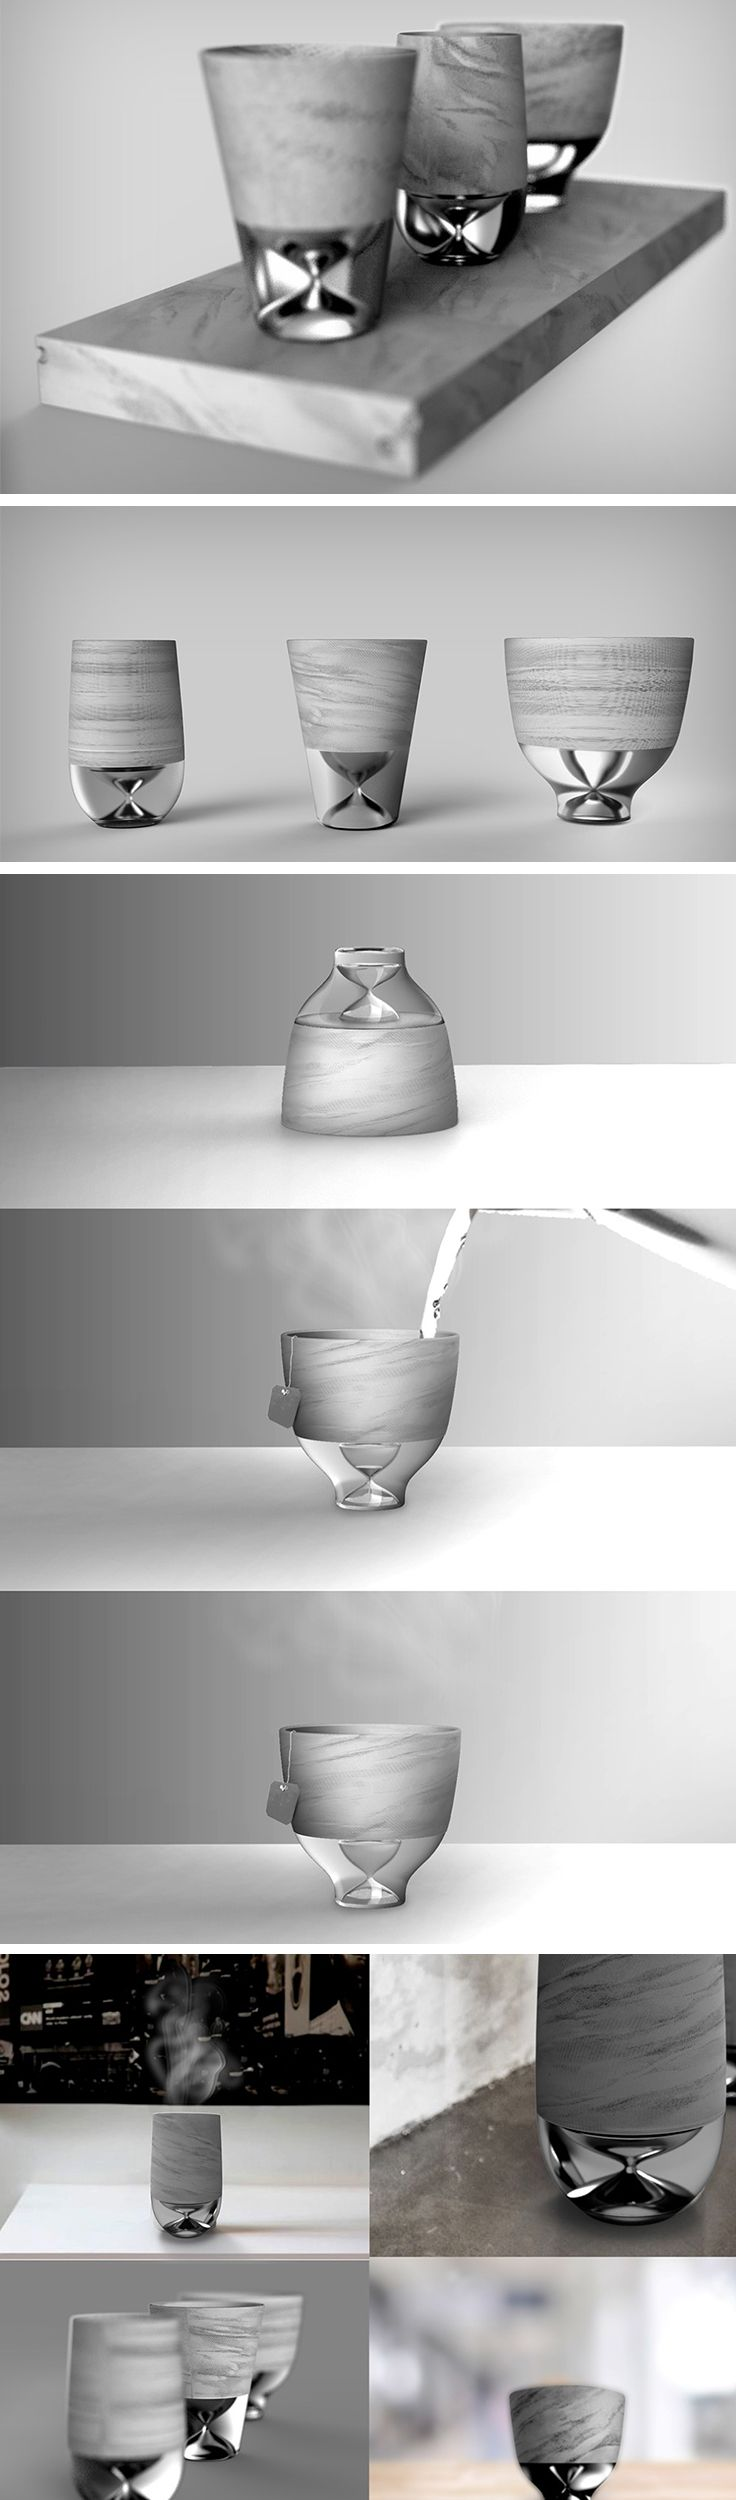 Merging teacup and hourglass, Yeonsoo's contraption lets you time your brew. The tea rests in the container at the top while the hourglass at the base of the cup lets you keep time rather accurately. Once the last grain of sand travels from the upper chamber to the lower chamber, take your teabag out, knowing that your brew is just perfect!